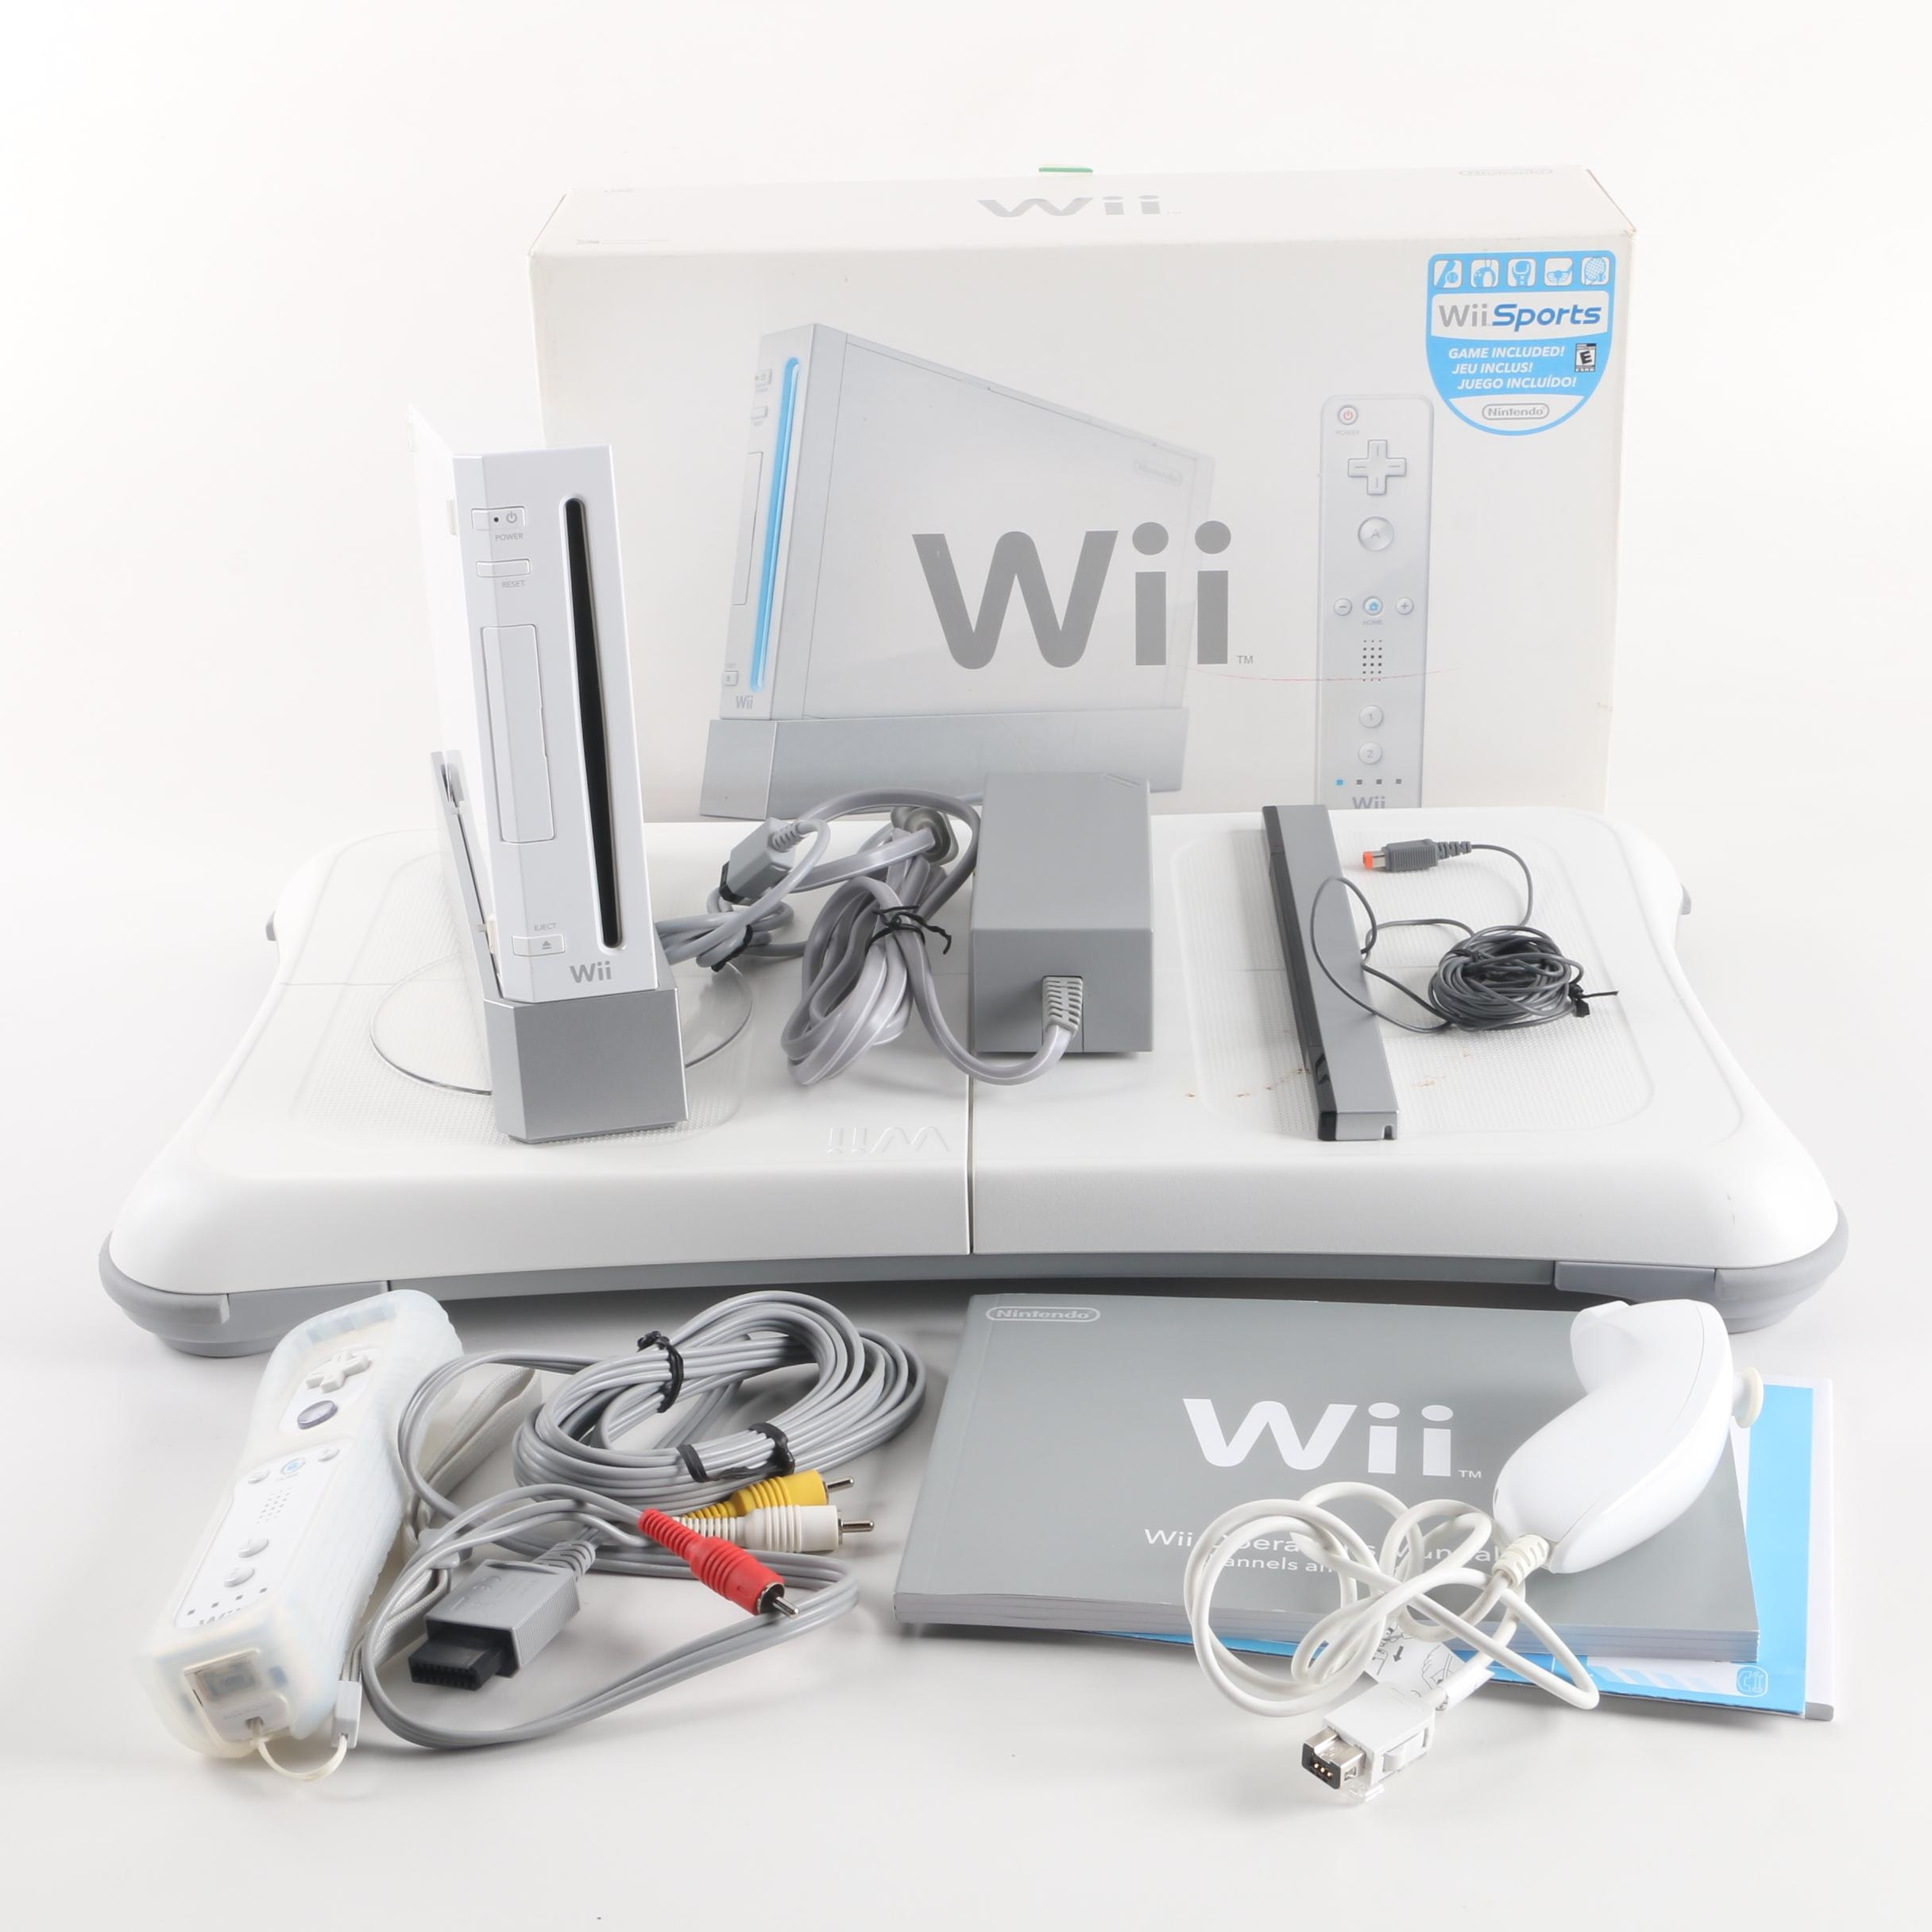 Nintendo Wii Video Game Consoles with Wii Fit Balance Board